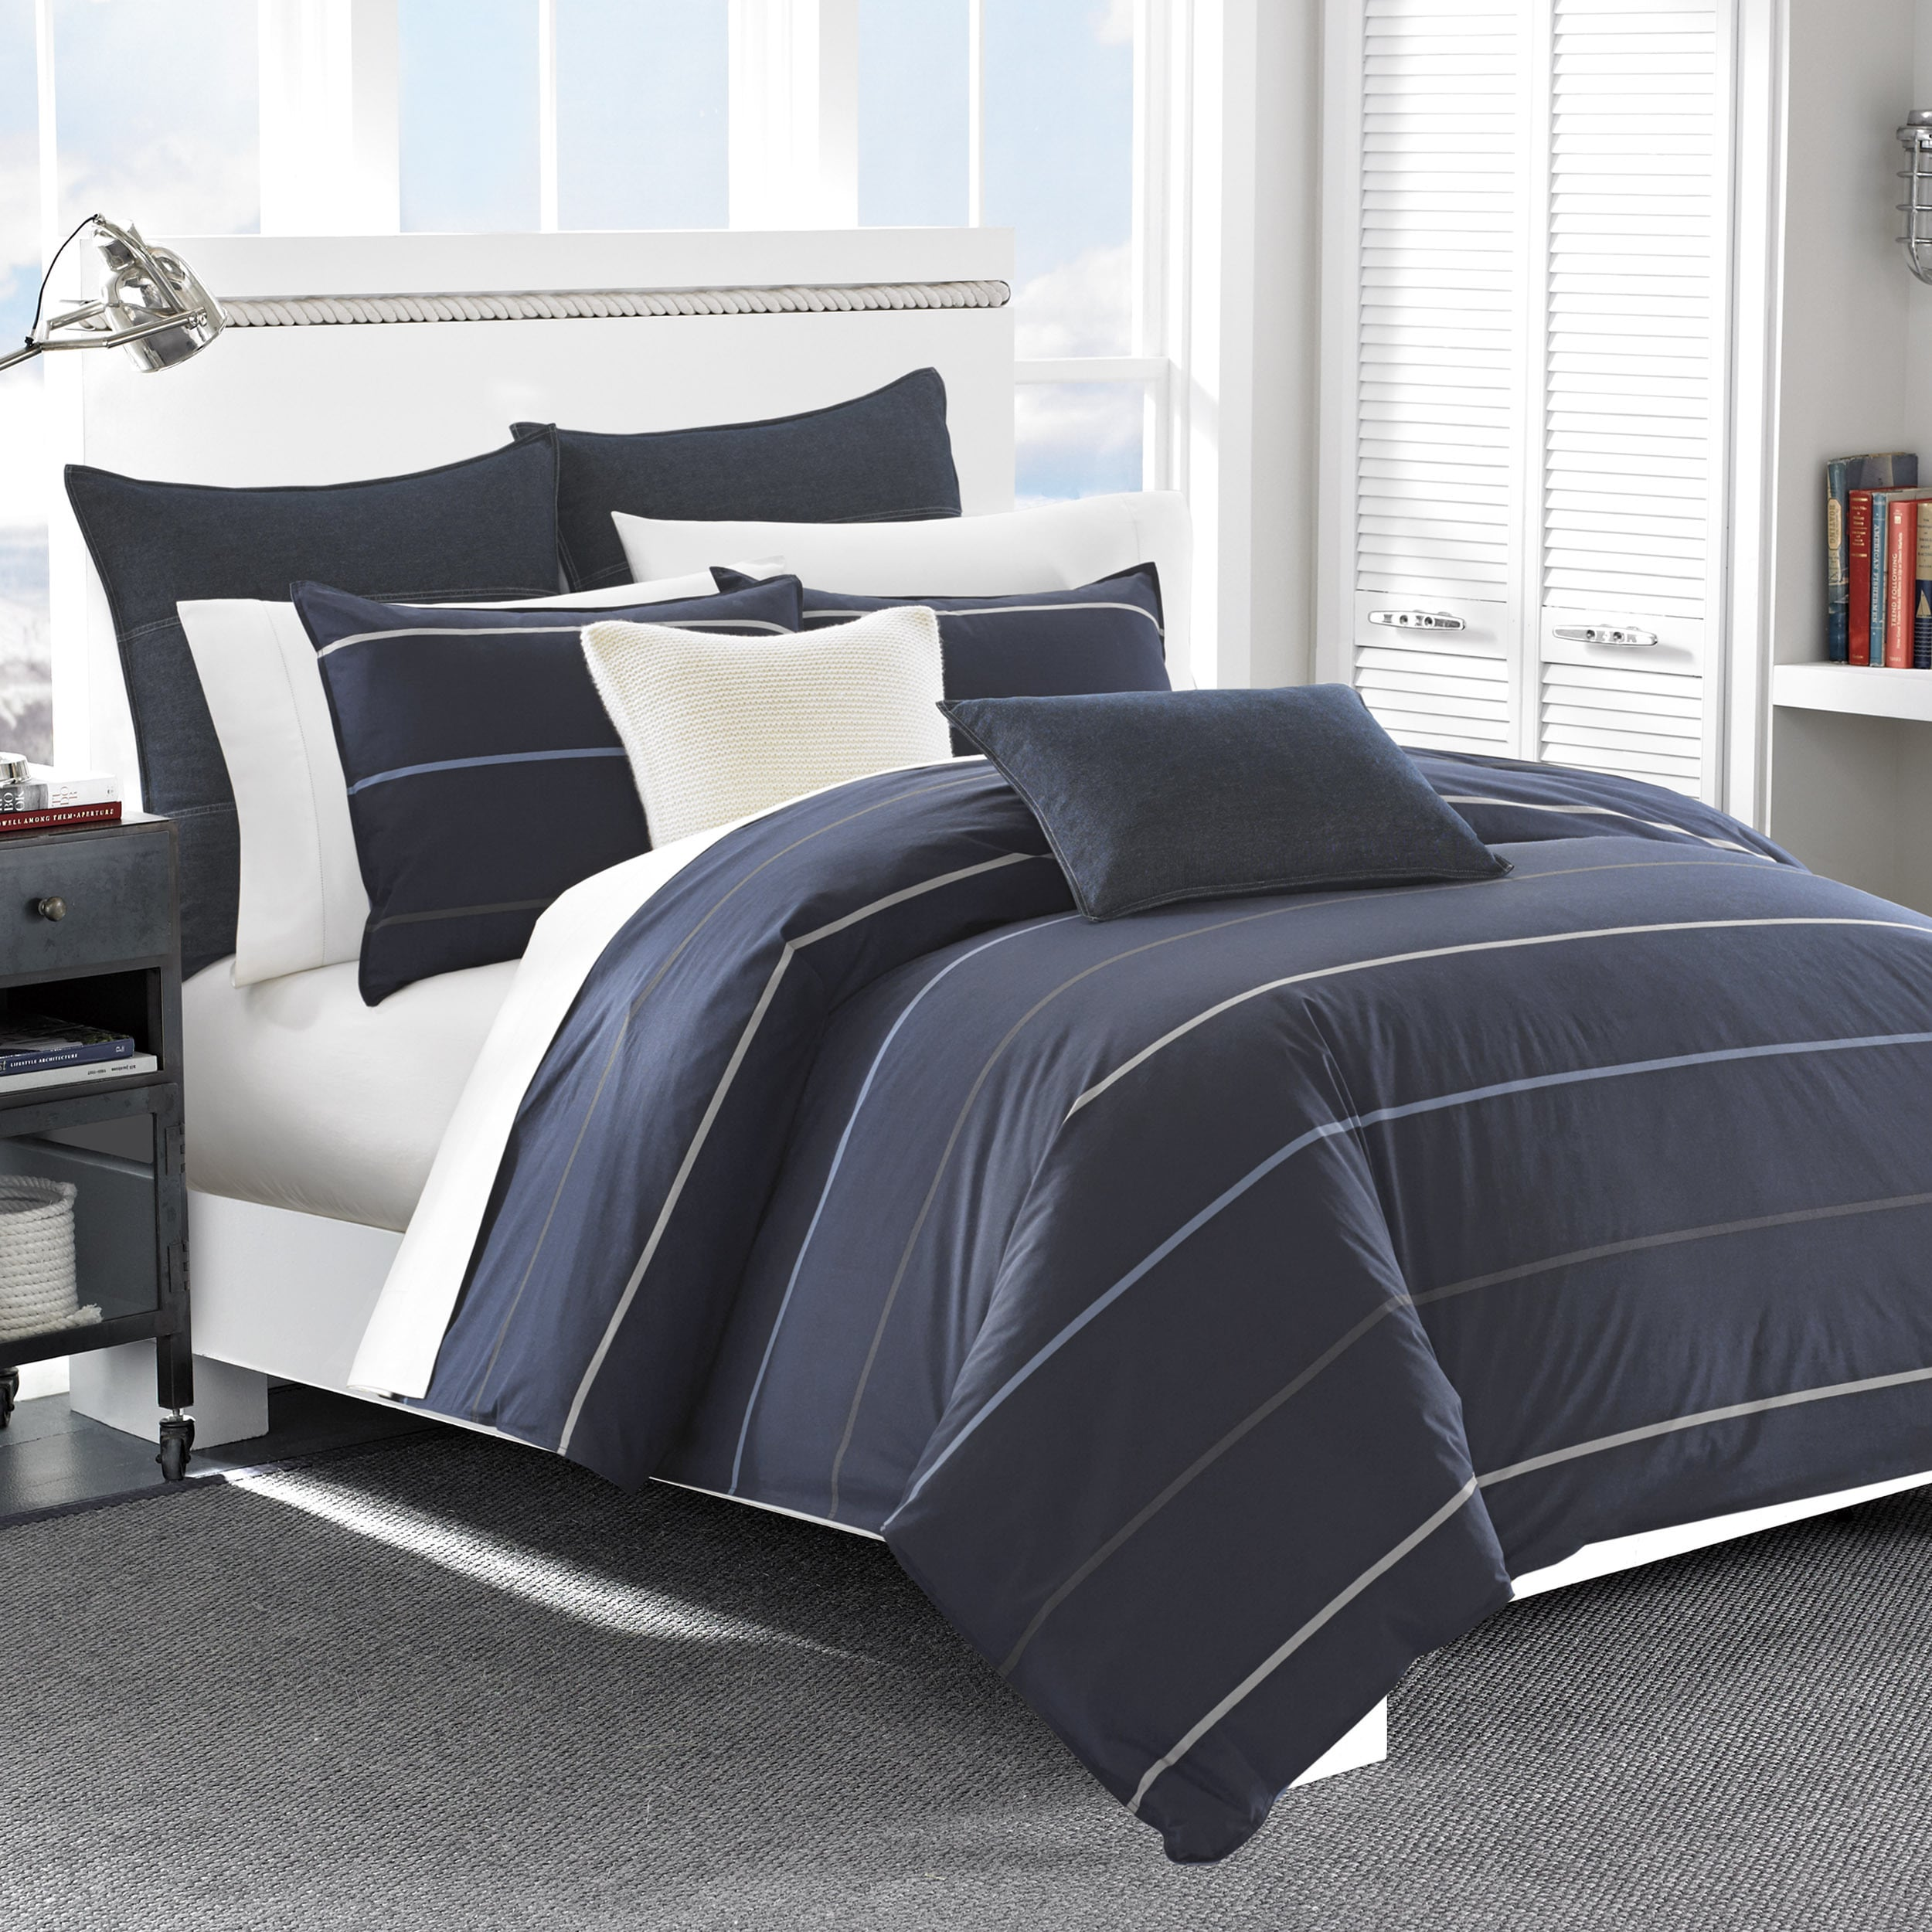 kitty set hello size duvet microfiber comfy bed jcpenney cotton comforter cheap macys bedding queen jacquard frame navy comforters purple sets